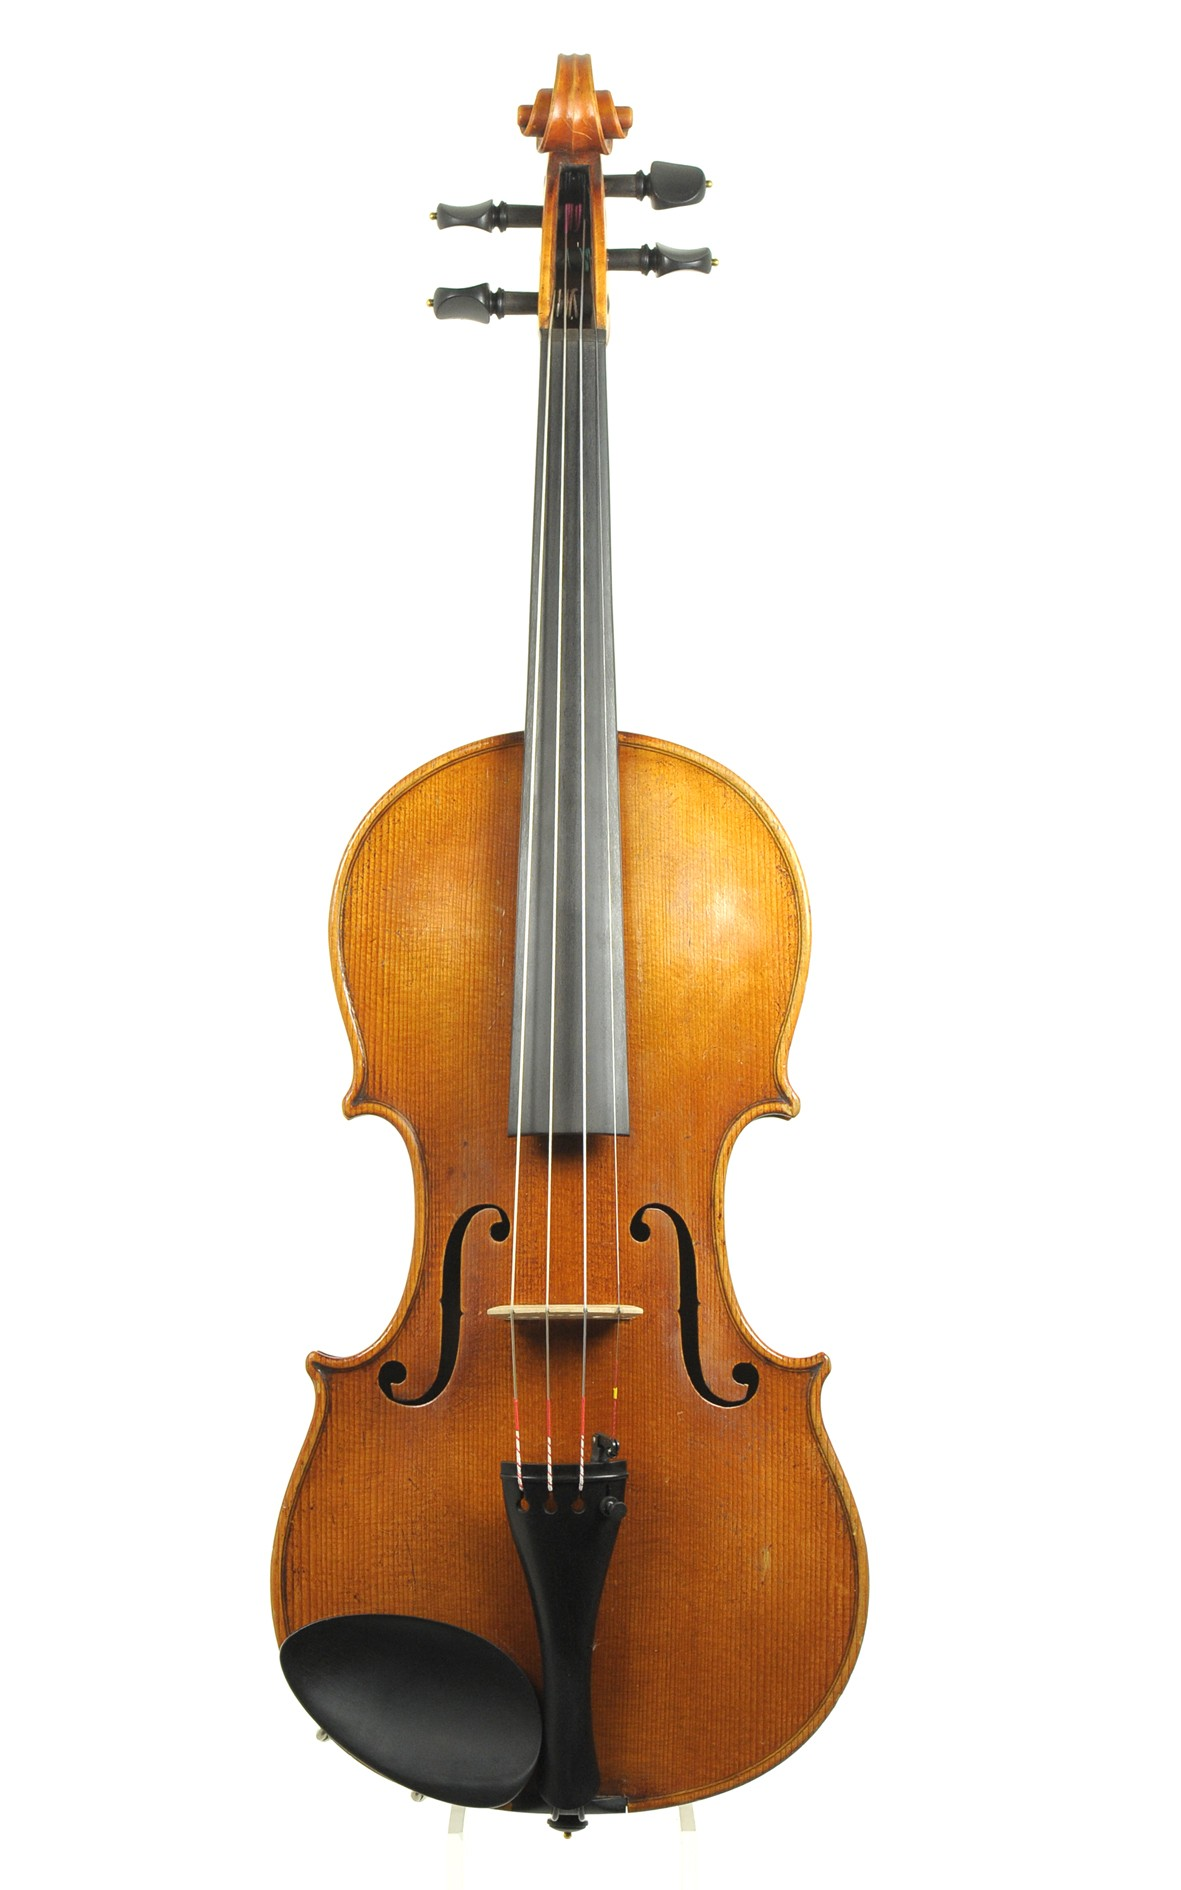 German violin after Stainer, approx. 1900 - top view